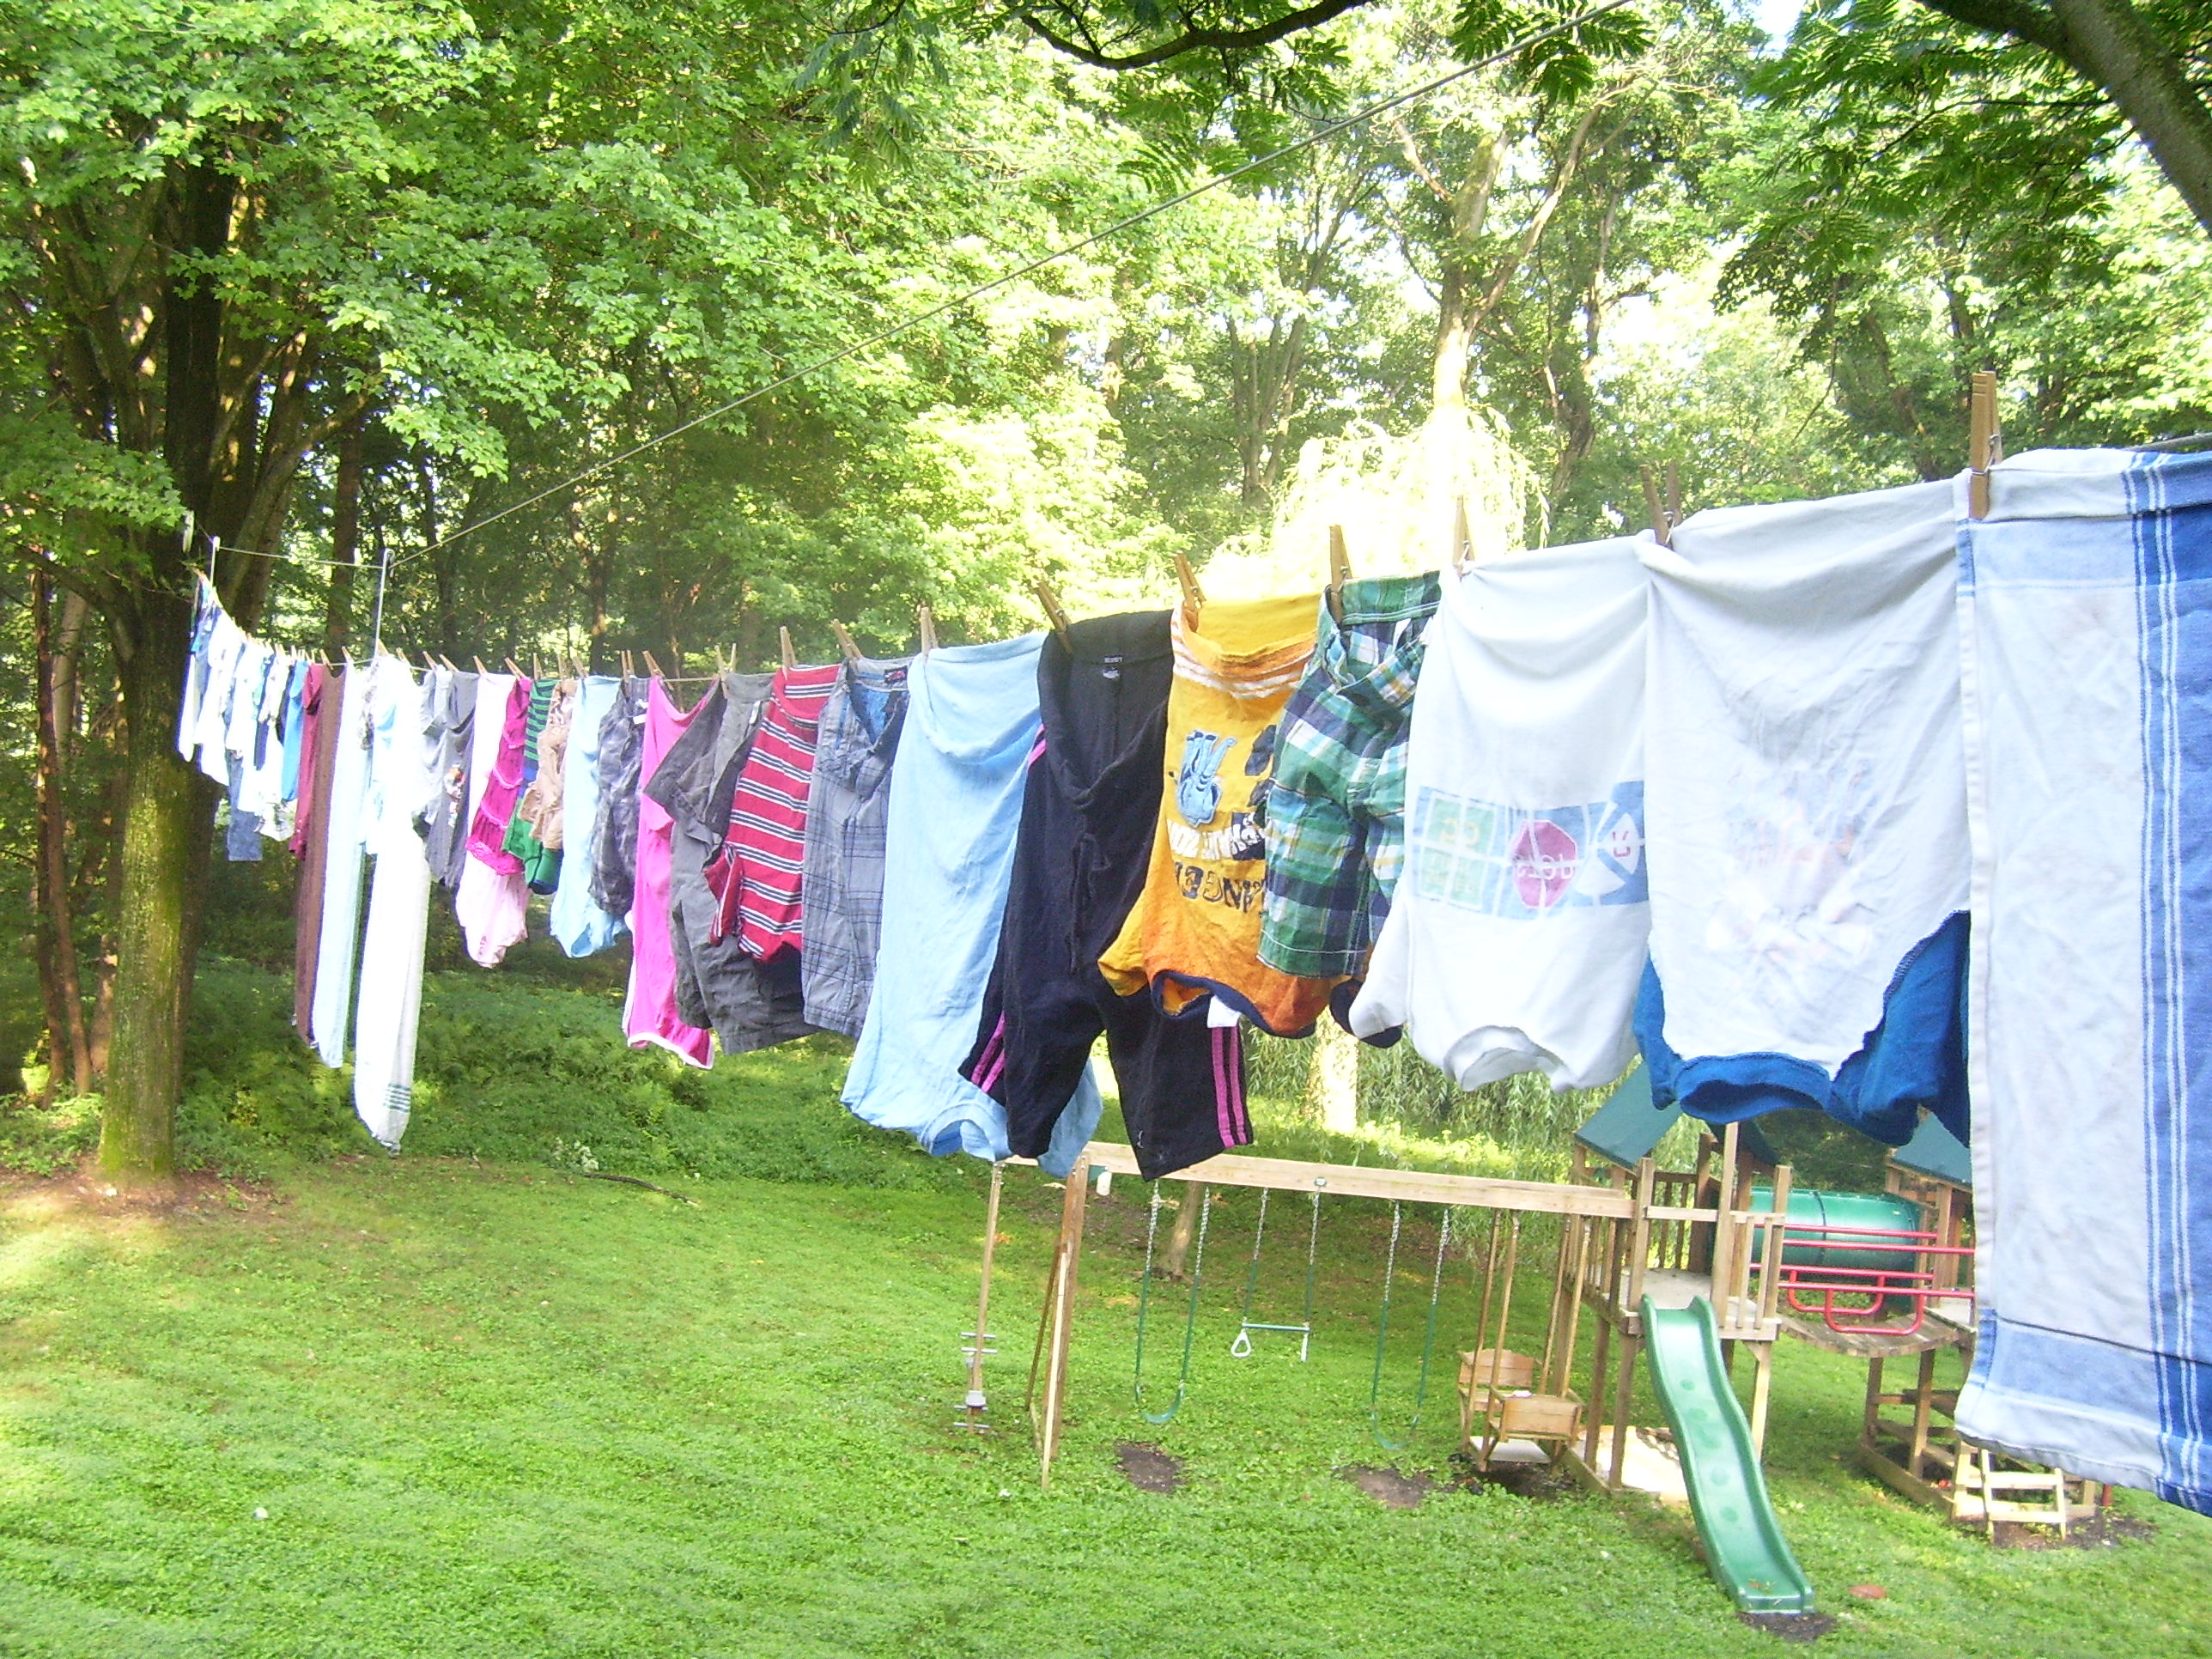 Hand your clothes instead of drying them up in your dryer. It prolongs the life of your clothes.